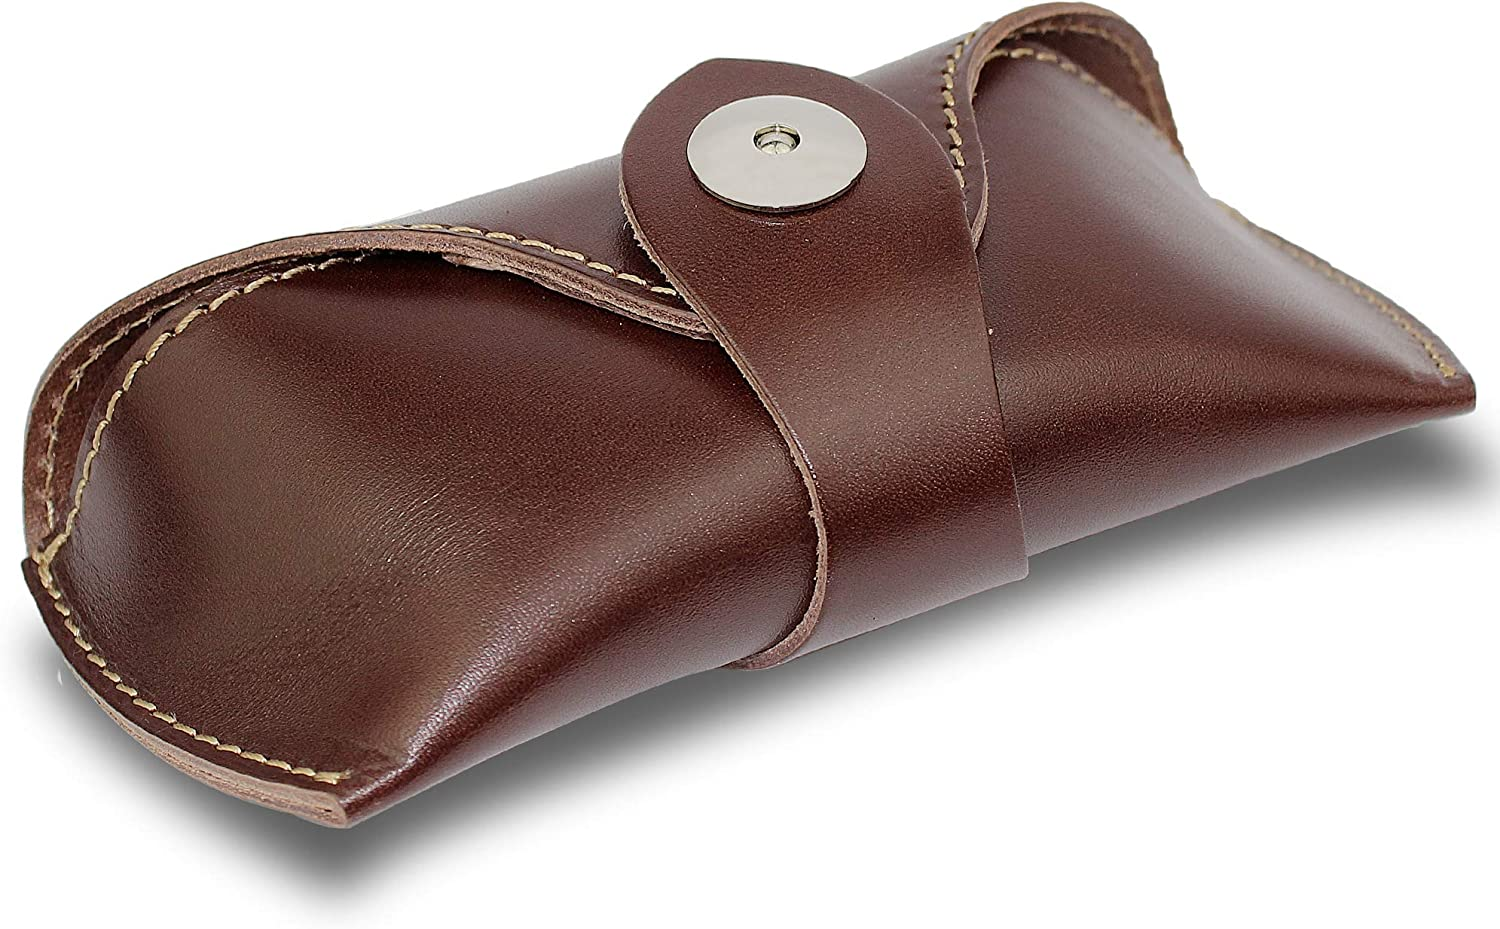 DK86 Genuine Leather Glasses Case Sunglasses Pouch Eyeglass Case, for Men and Women